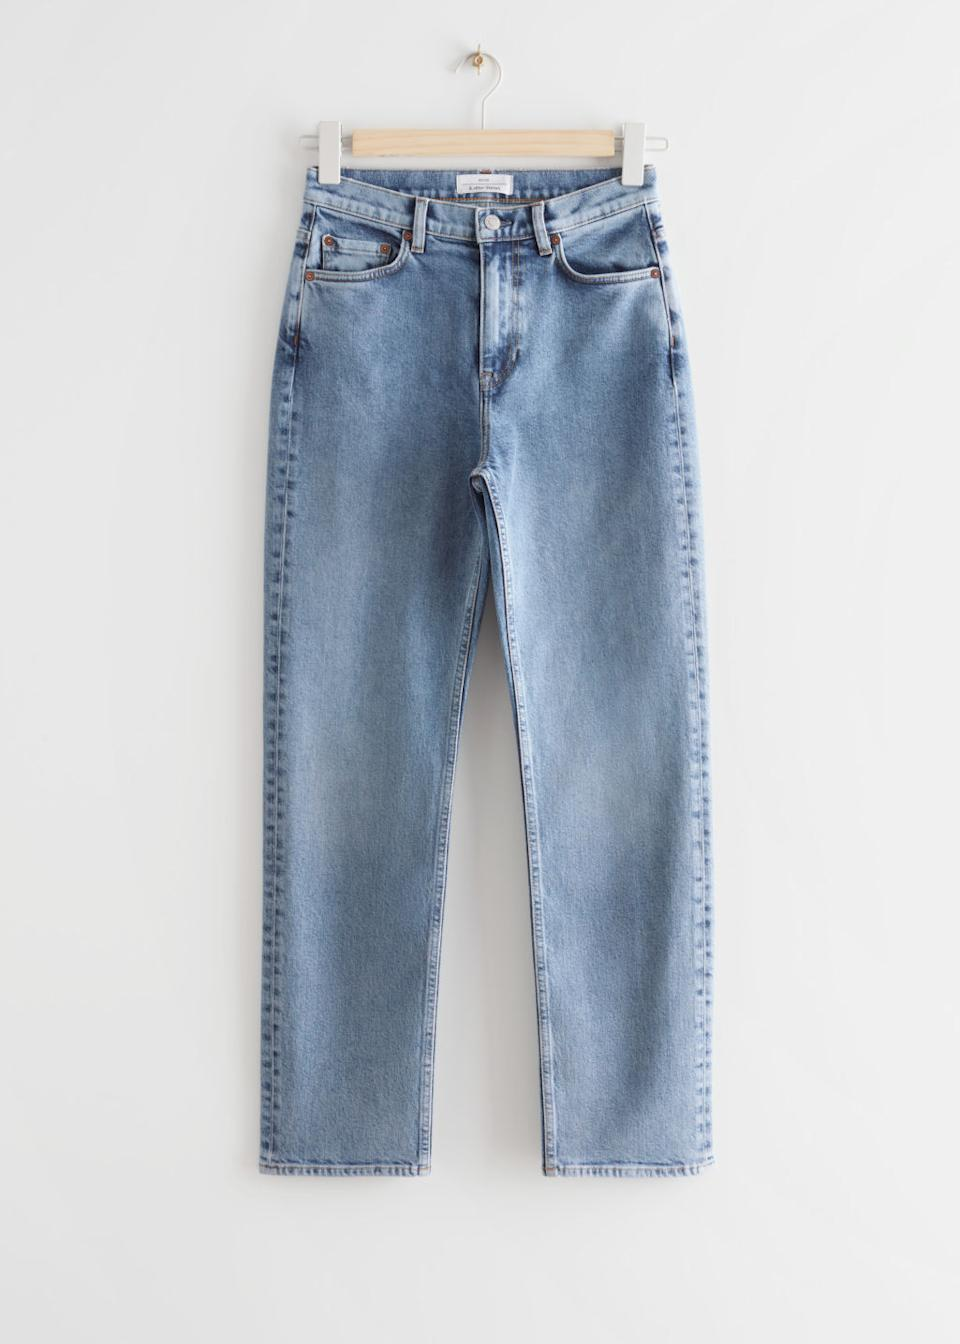 Jean Cut & Other Stories